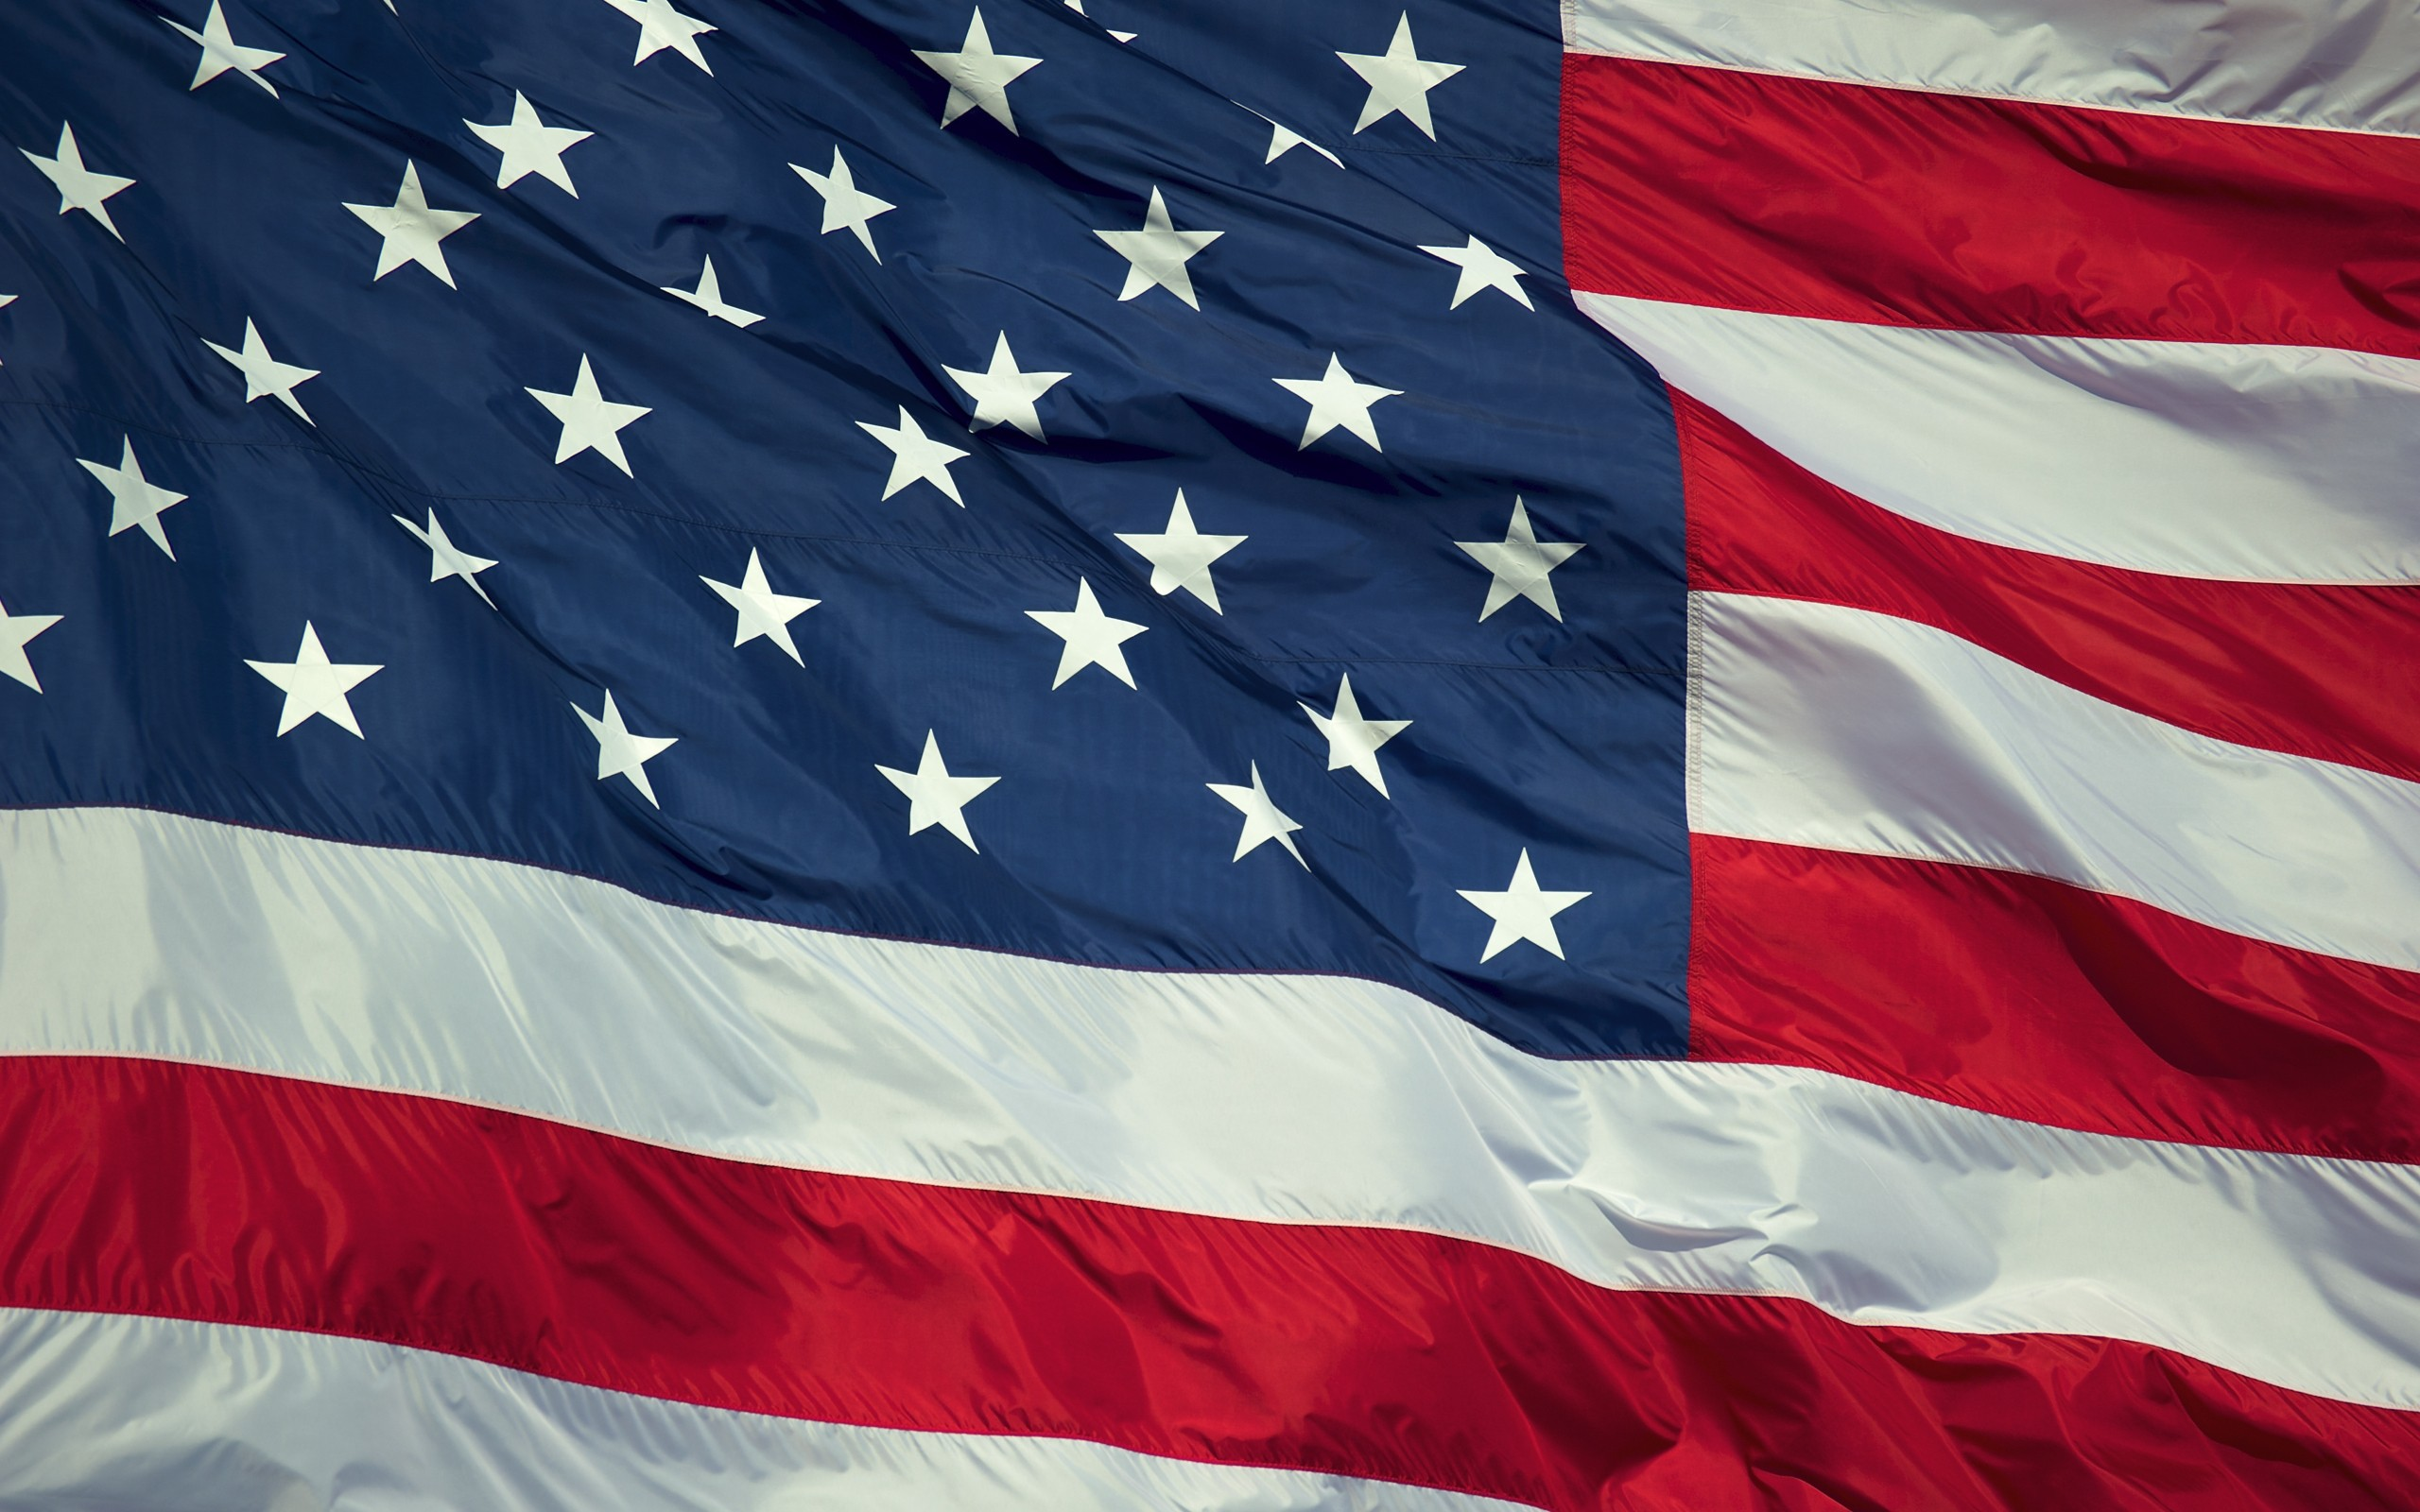 american flag images wallpaper